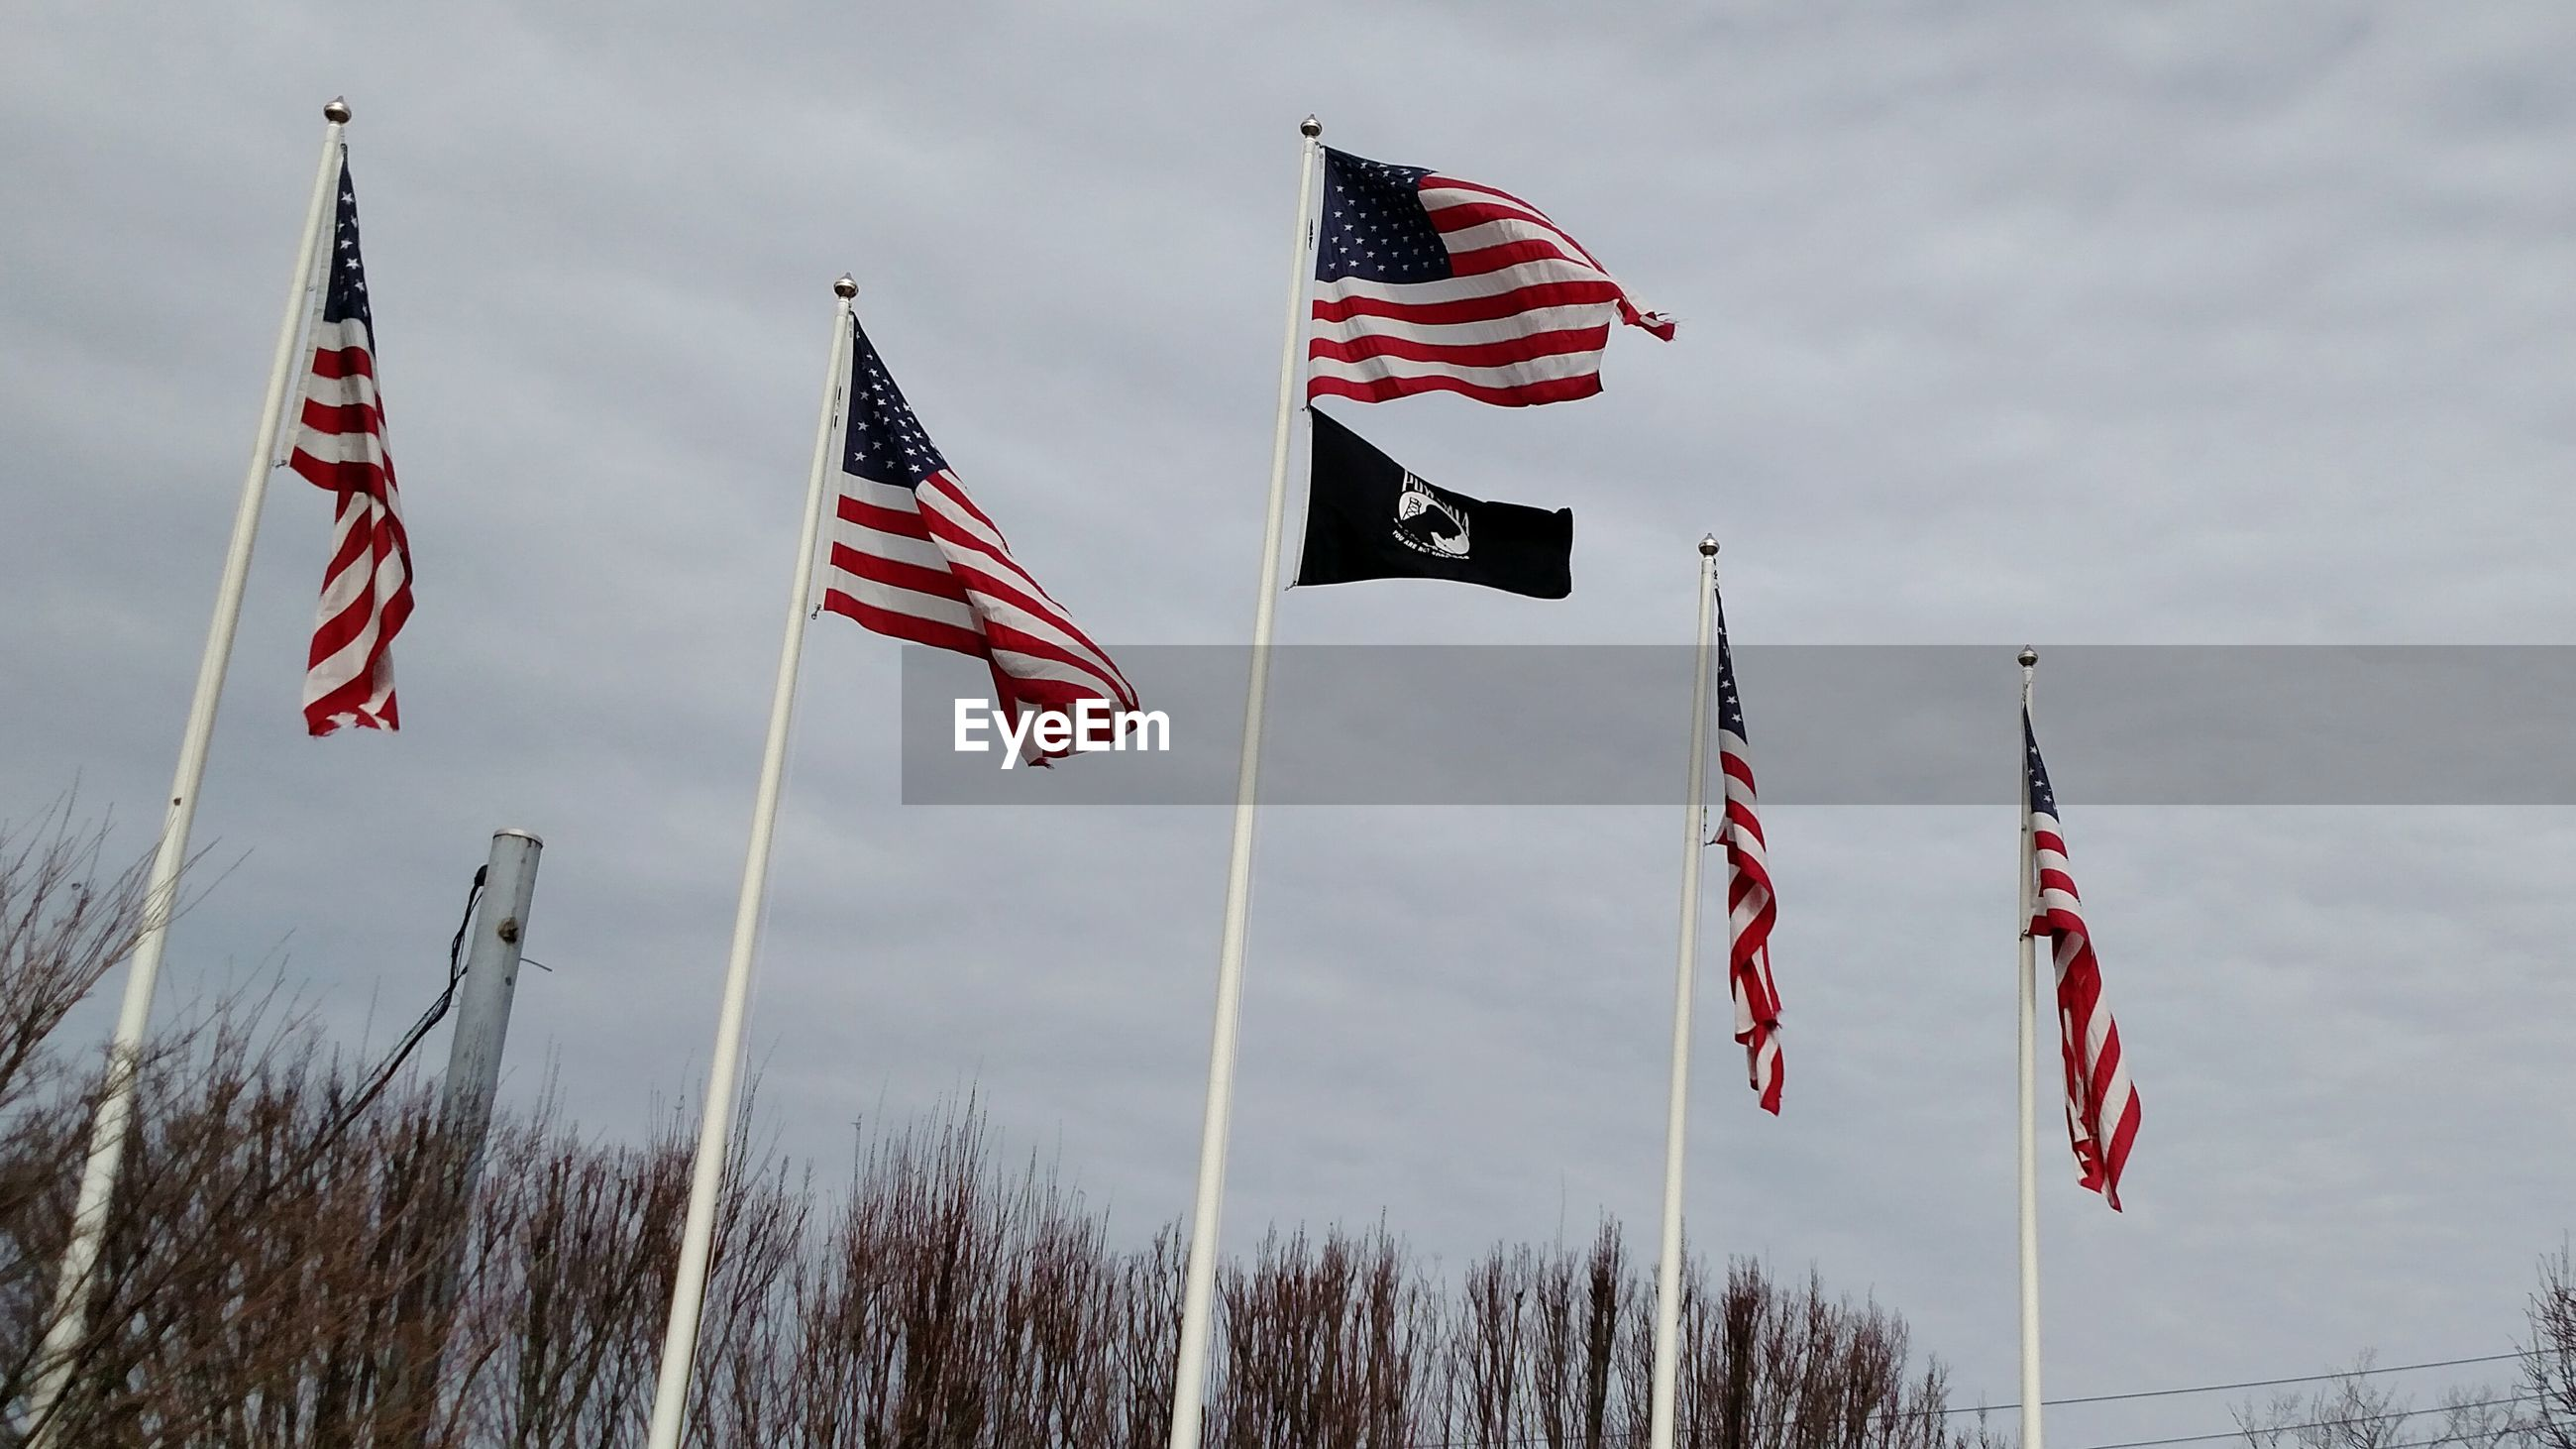 LOW ANGLE VIEW OF AMERICAN FLAG FLYING AGAINST SKY